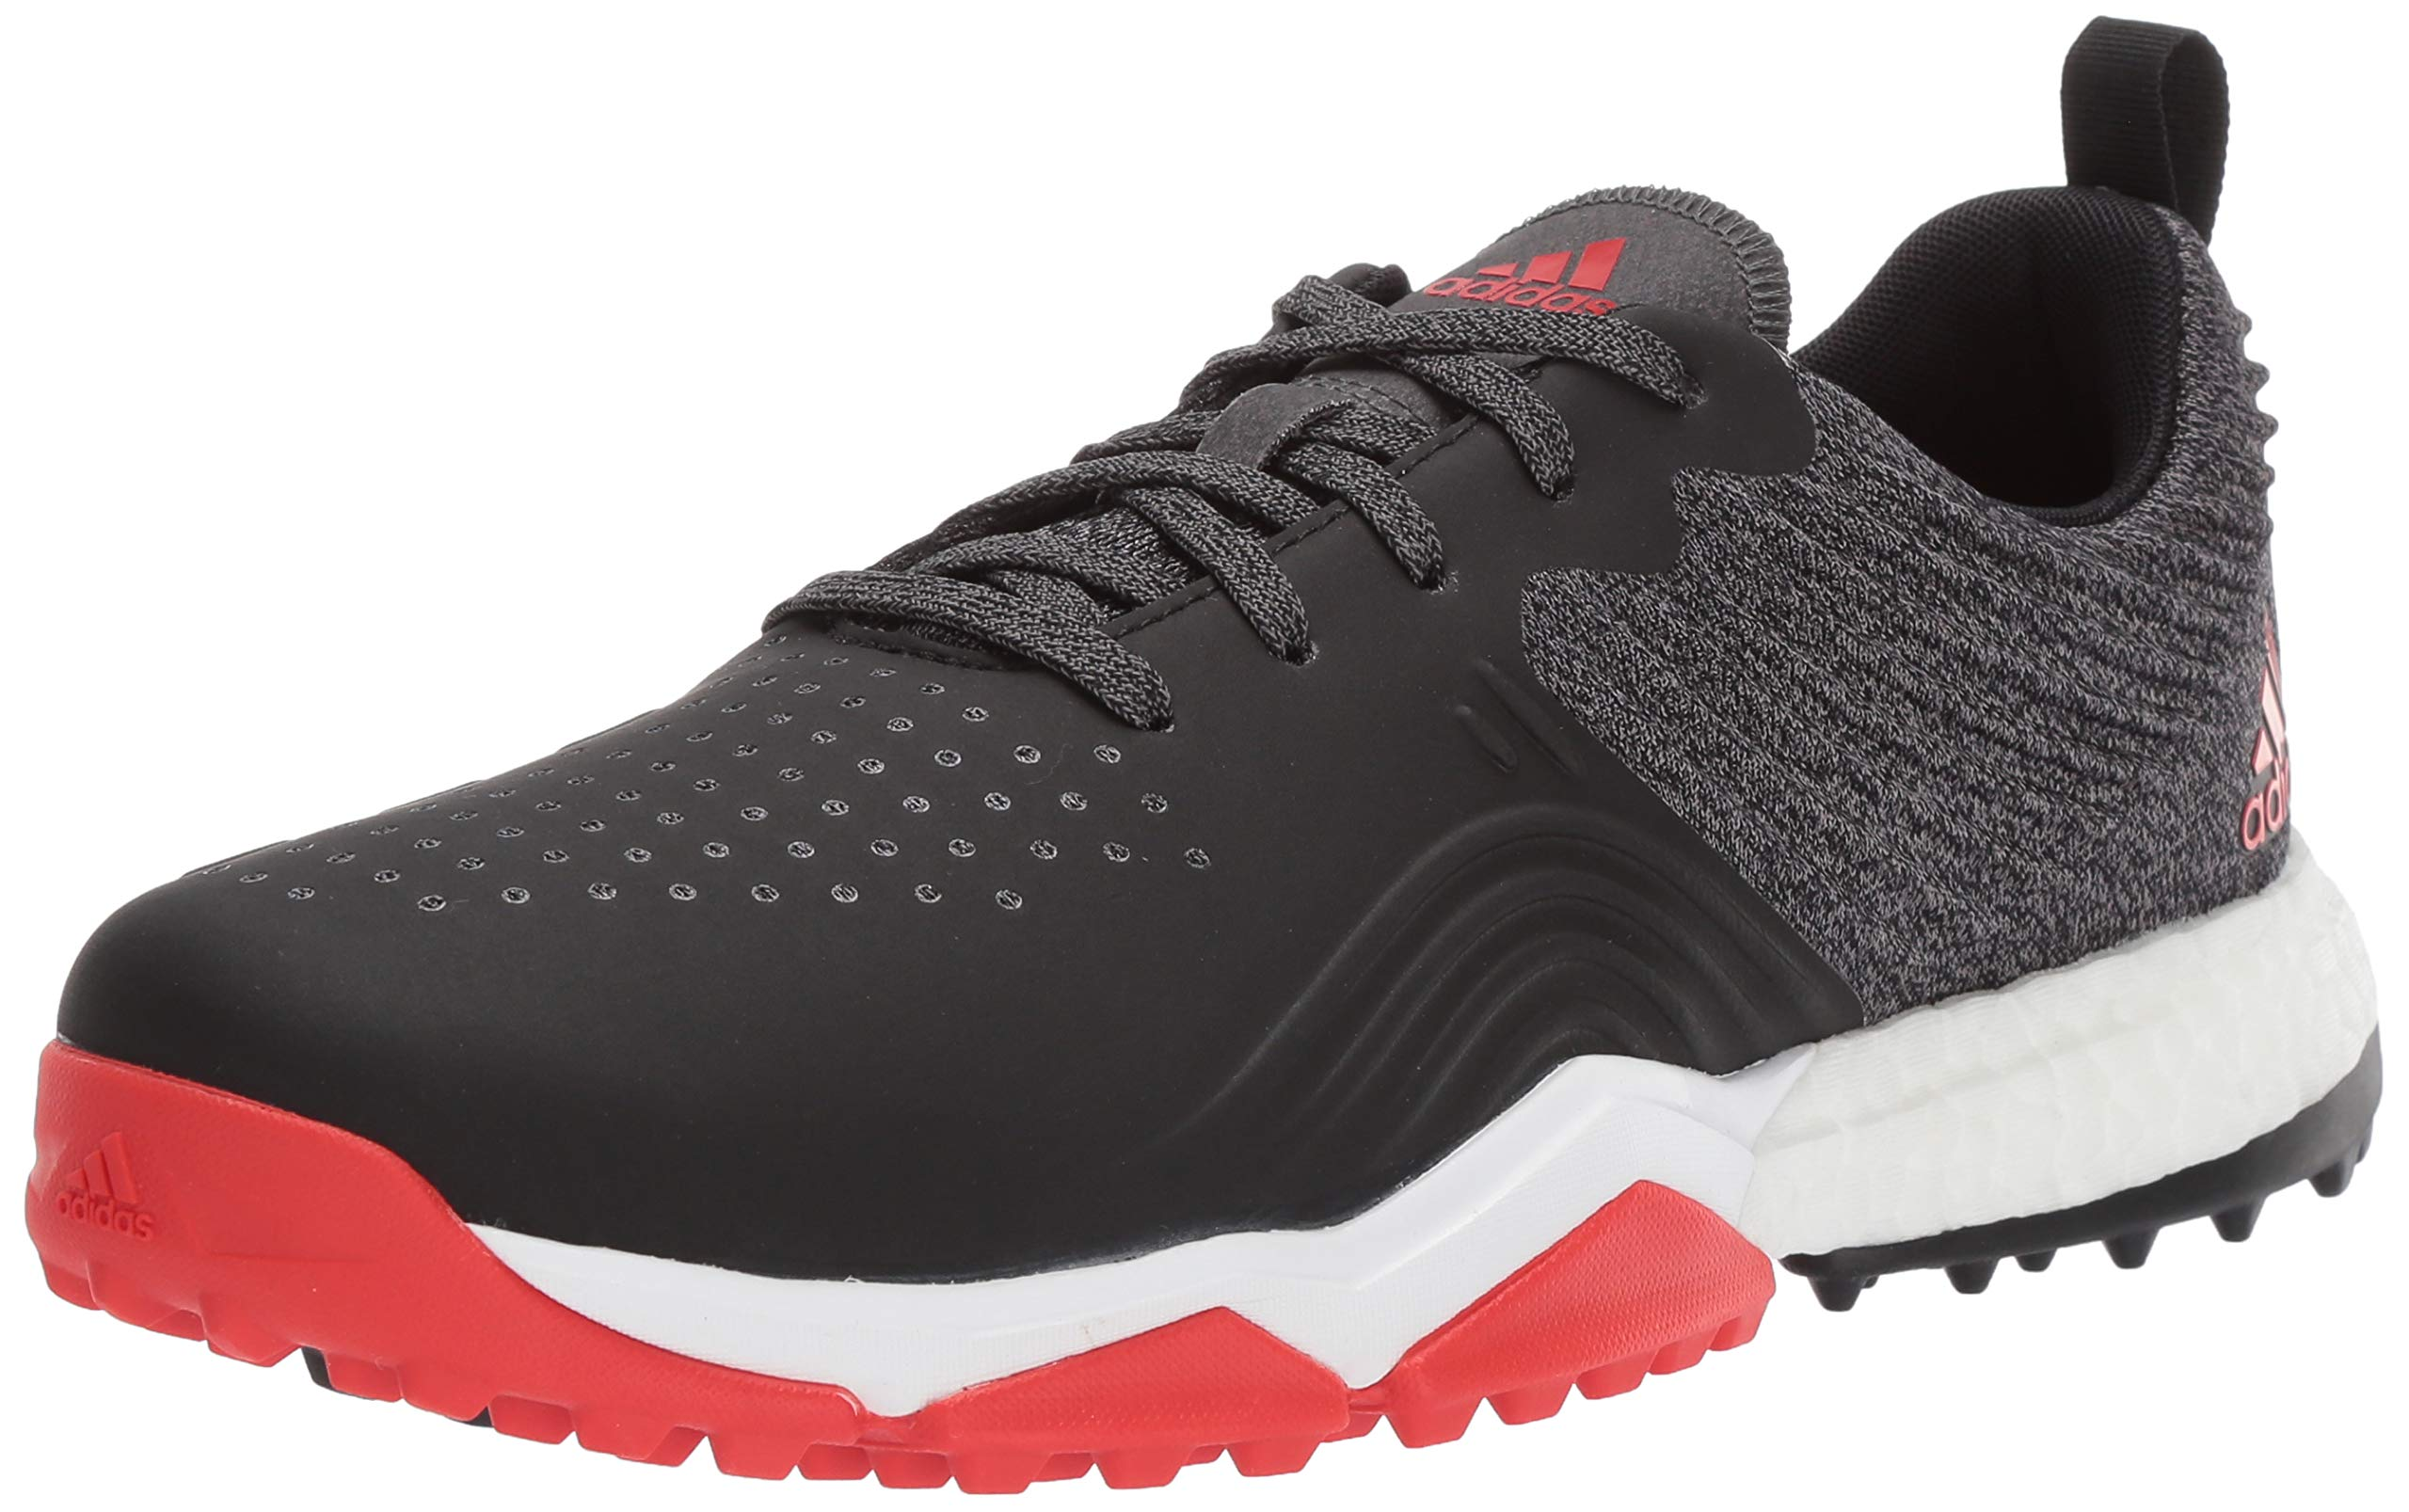 adidas Men's Adipower 4ORGED S Golf Shoe, core Black/red/FTWR White, 11 W US by adidas